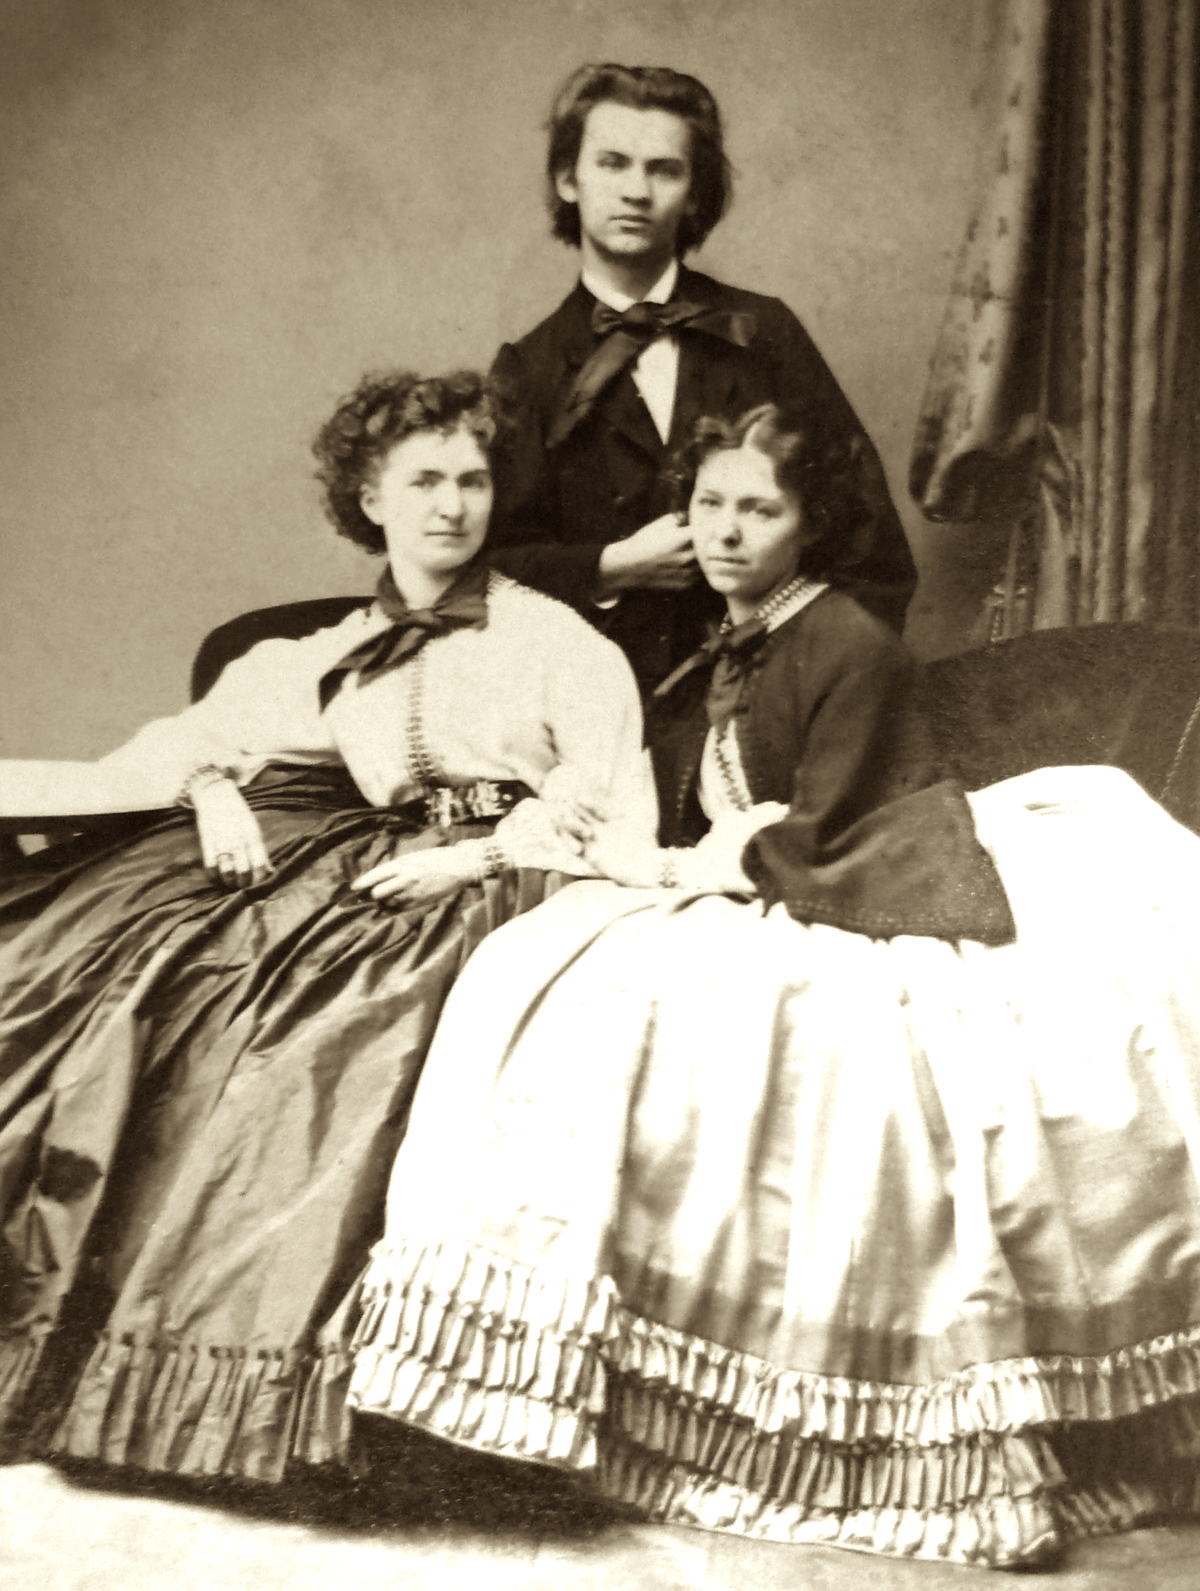 Wilma, Franz and Marie Neruda, c.1862